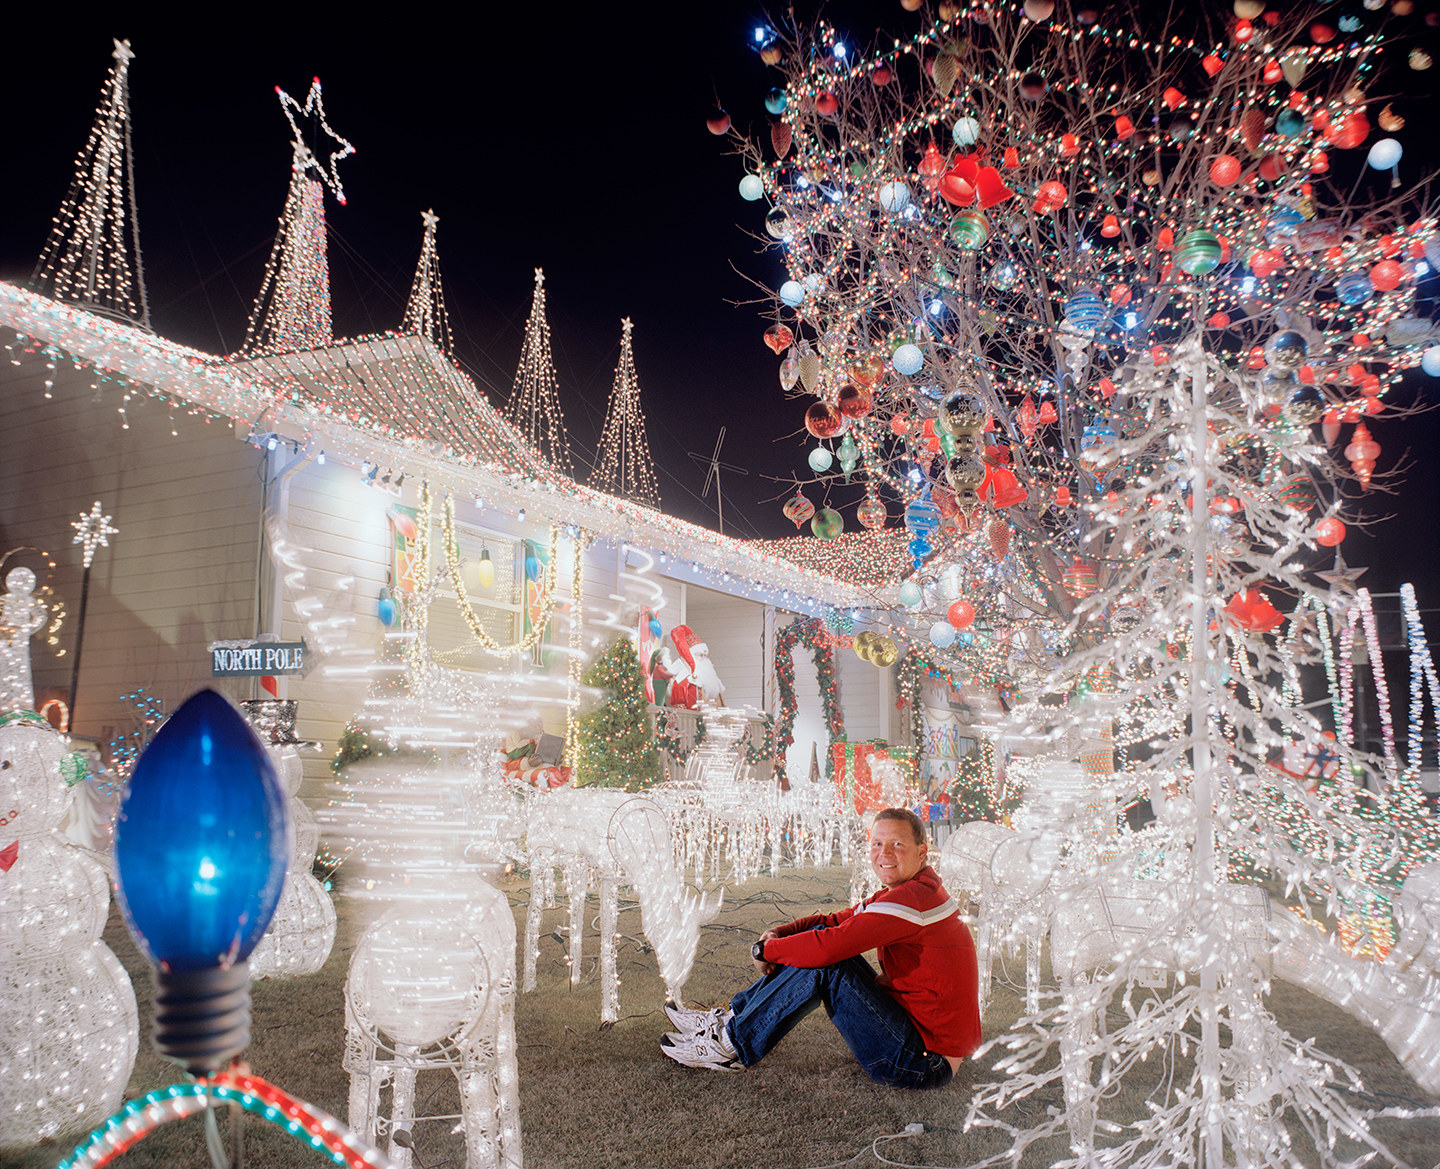 A man surrounded by white Christmas lights on a lawn